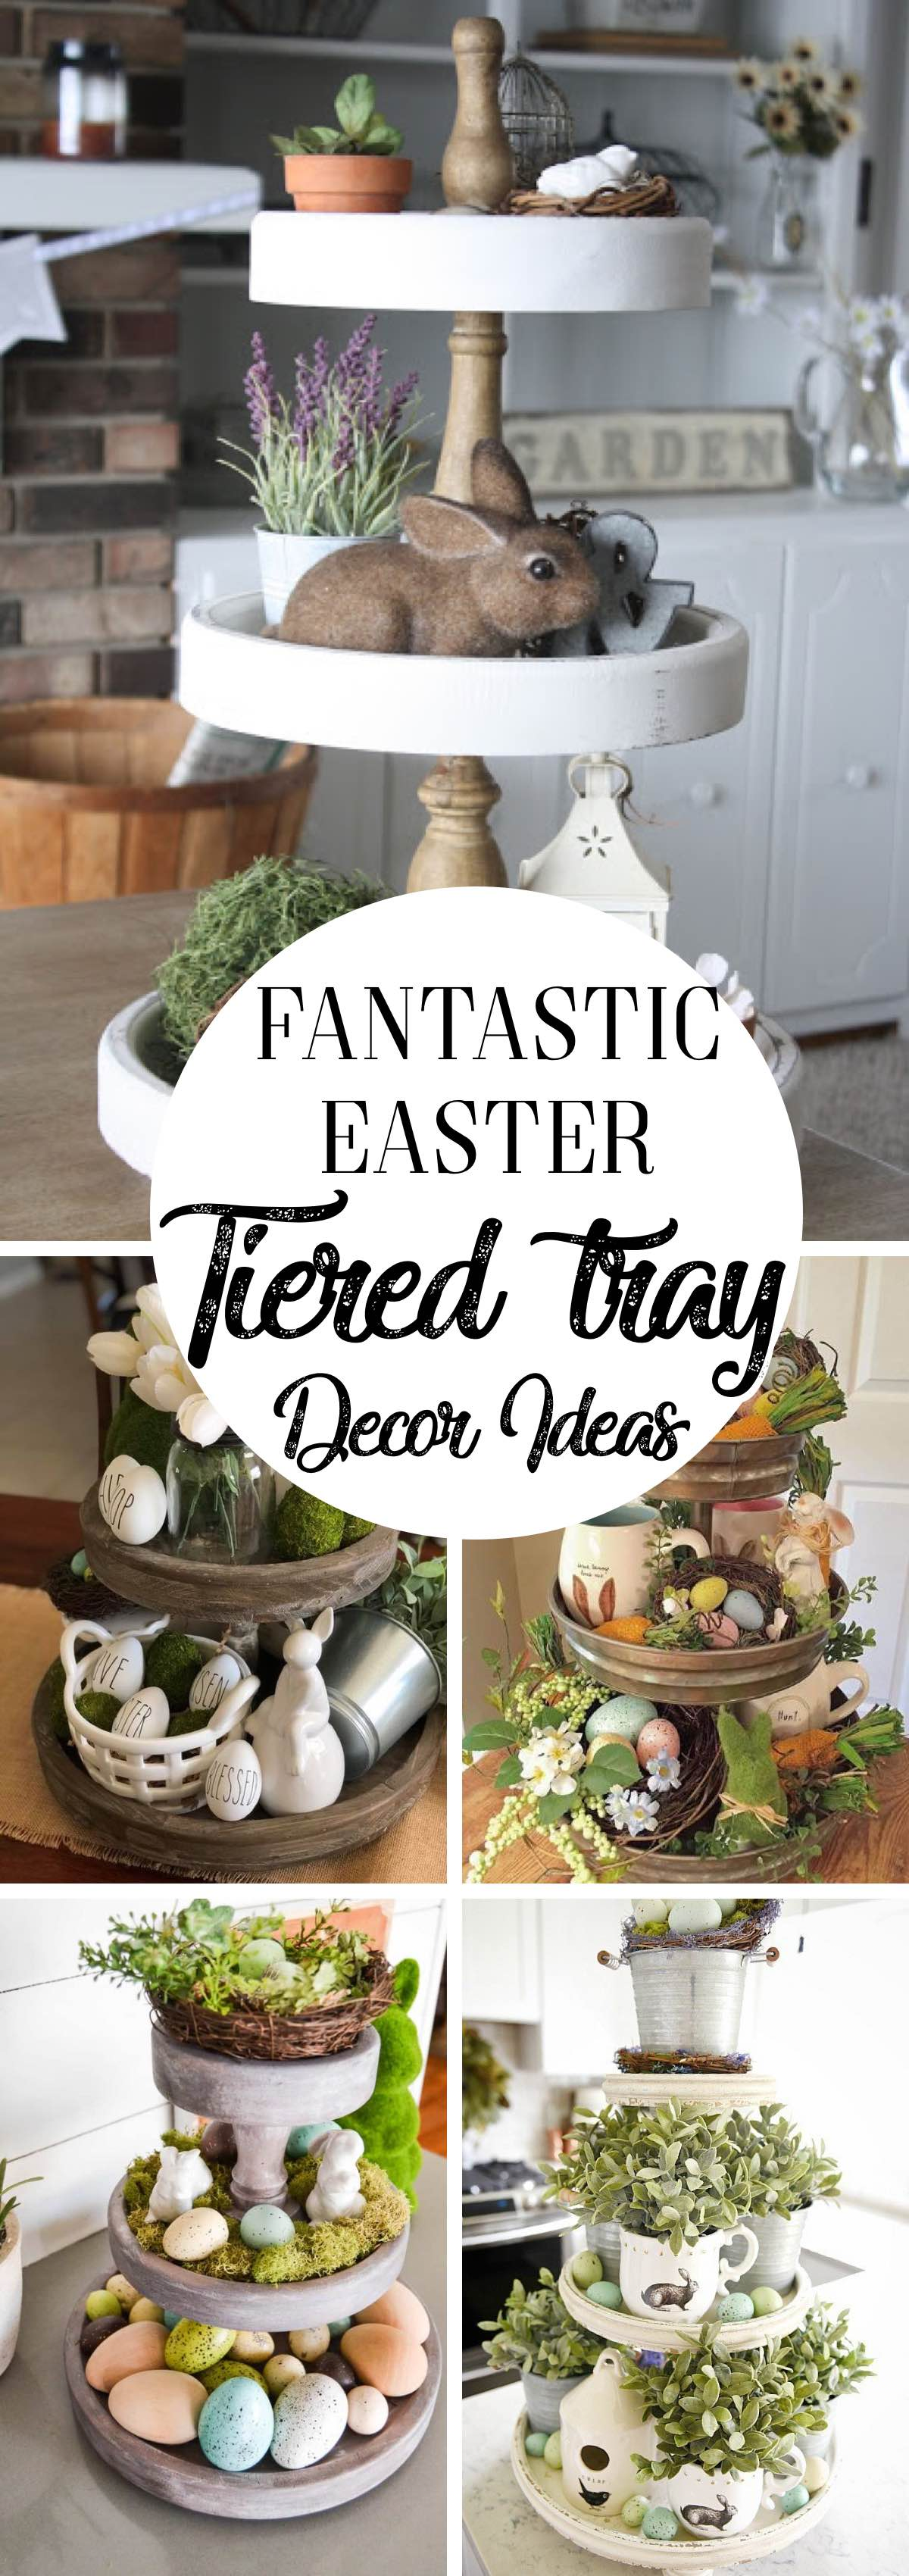 Fantastic Easter Tiered Tray Decor Ideas